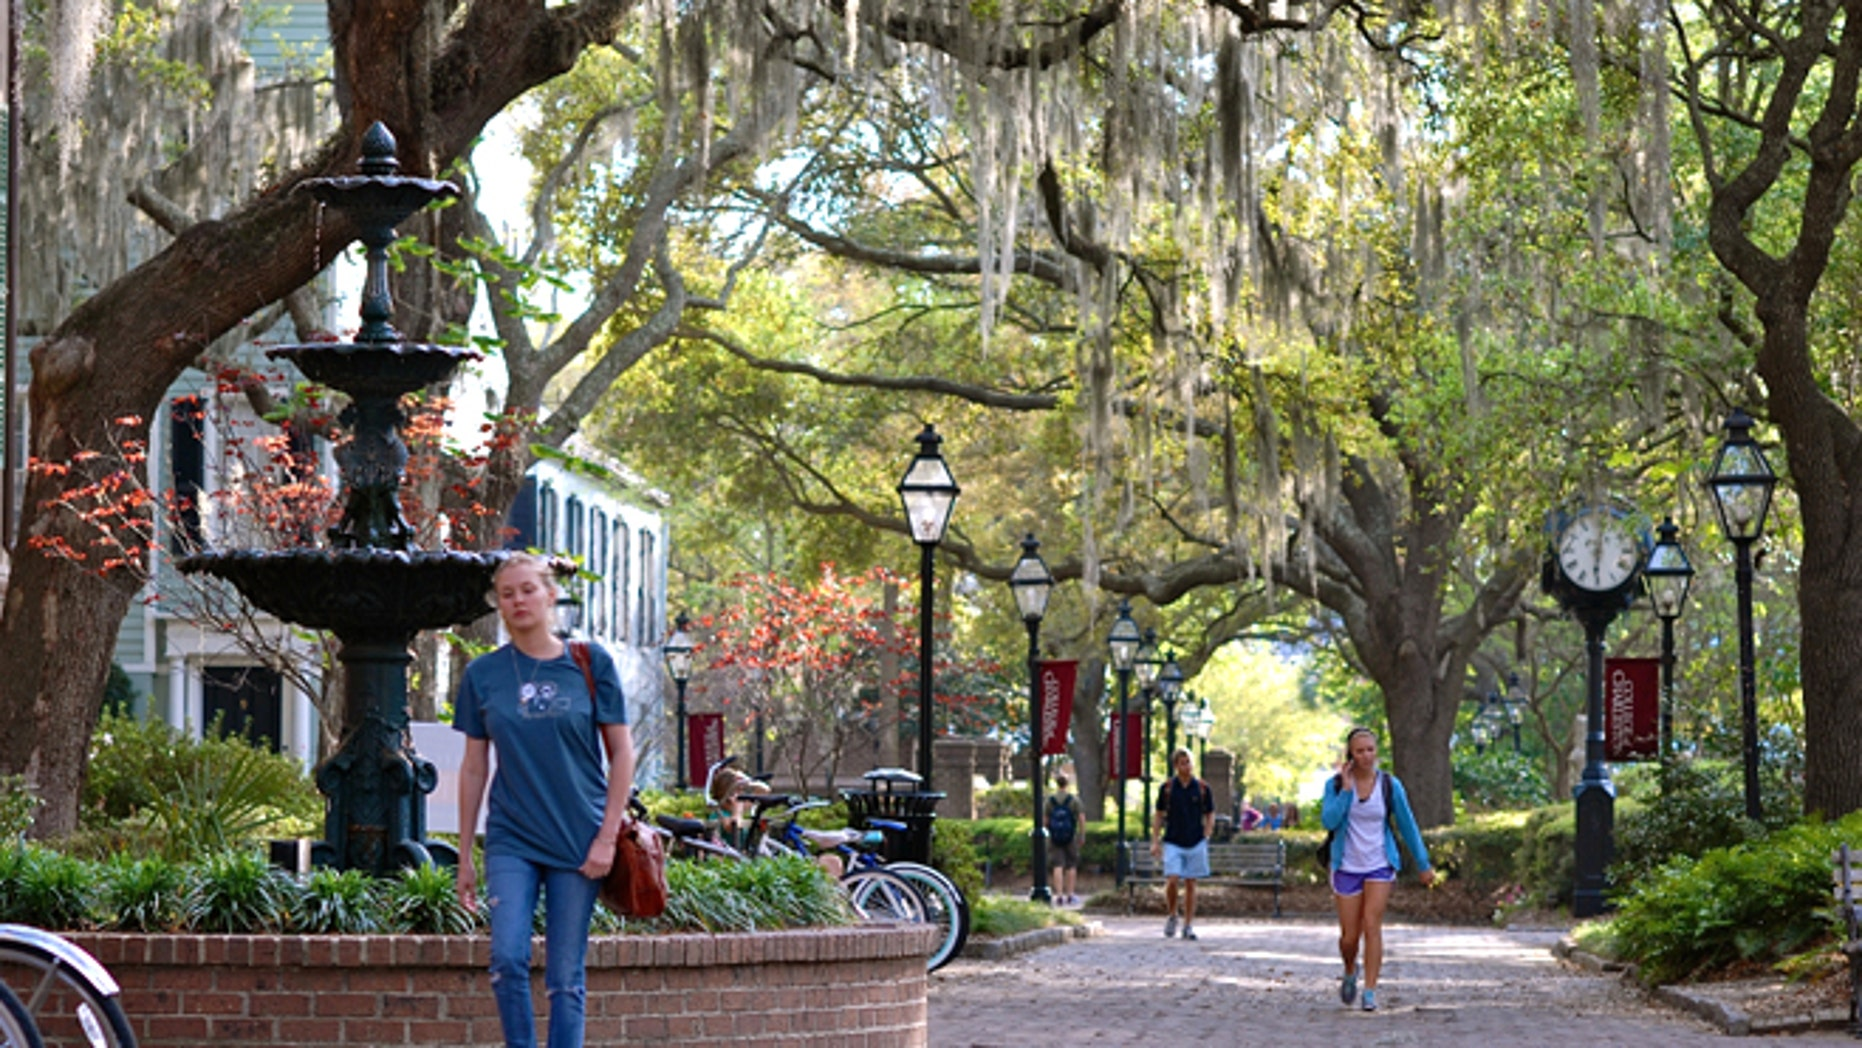 Charleston, S.C. was voted as the world's top tourist town by Conde Nast.